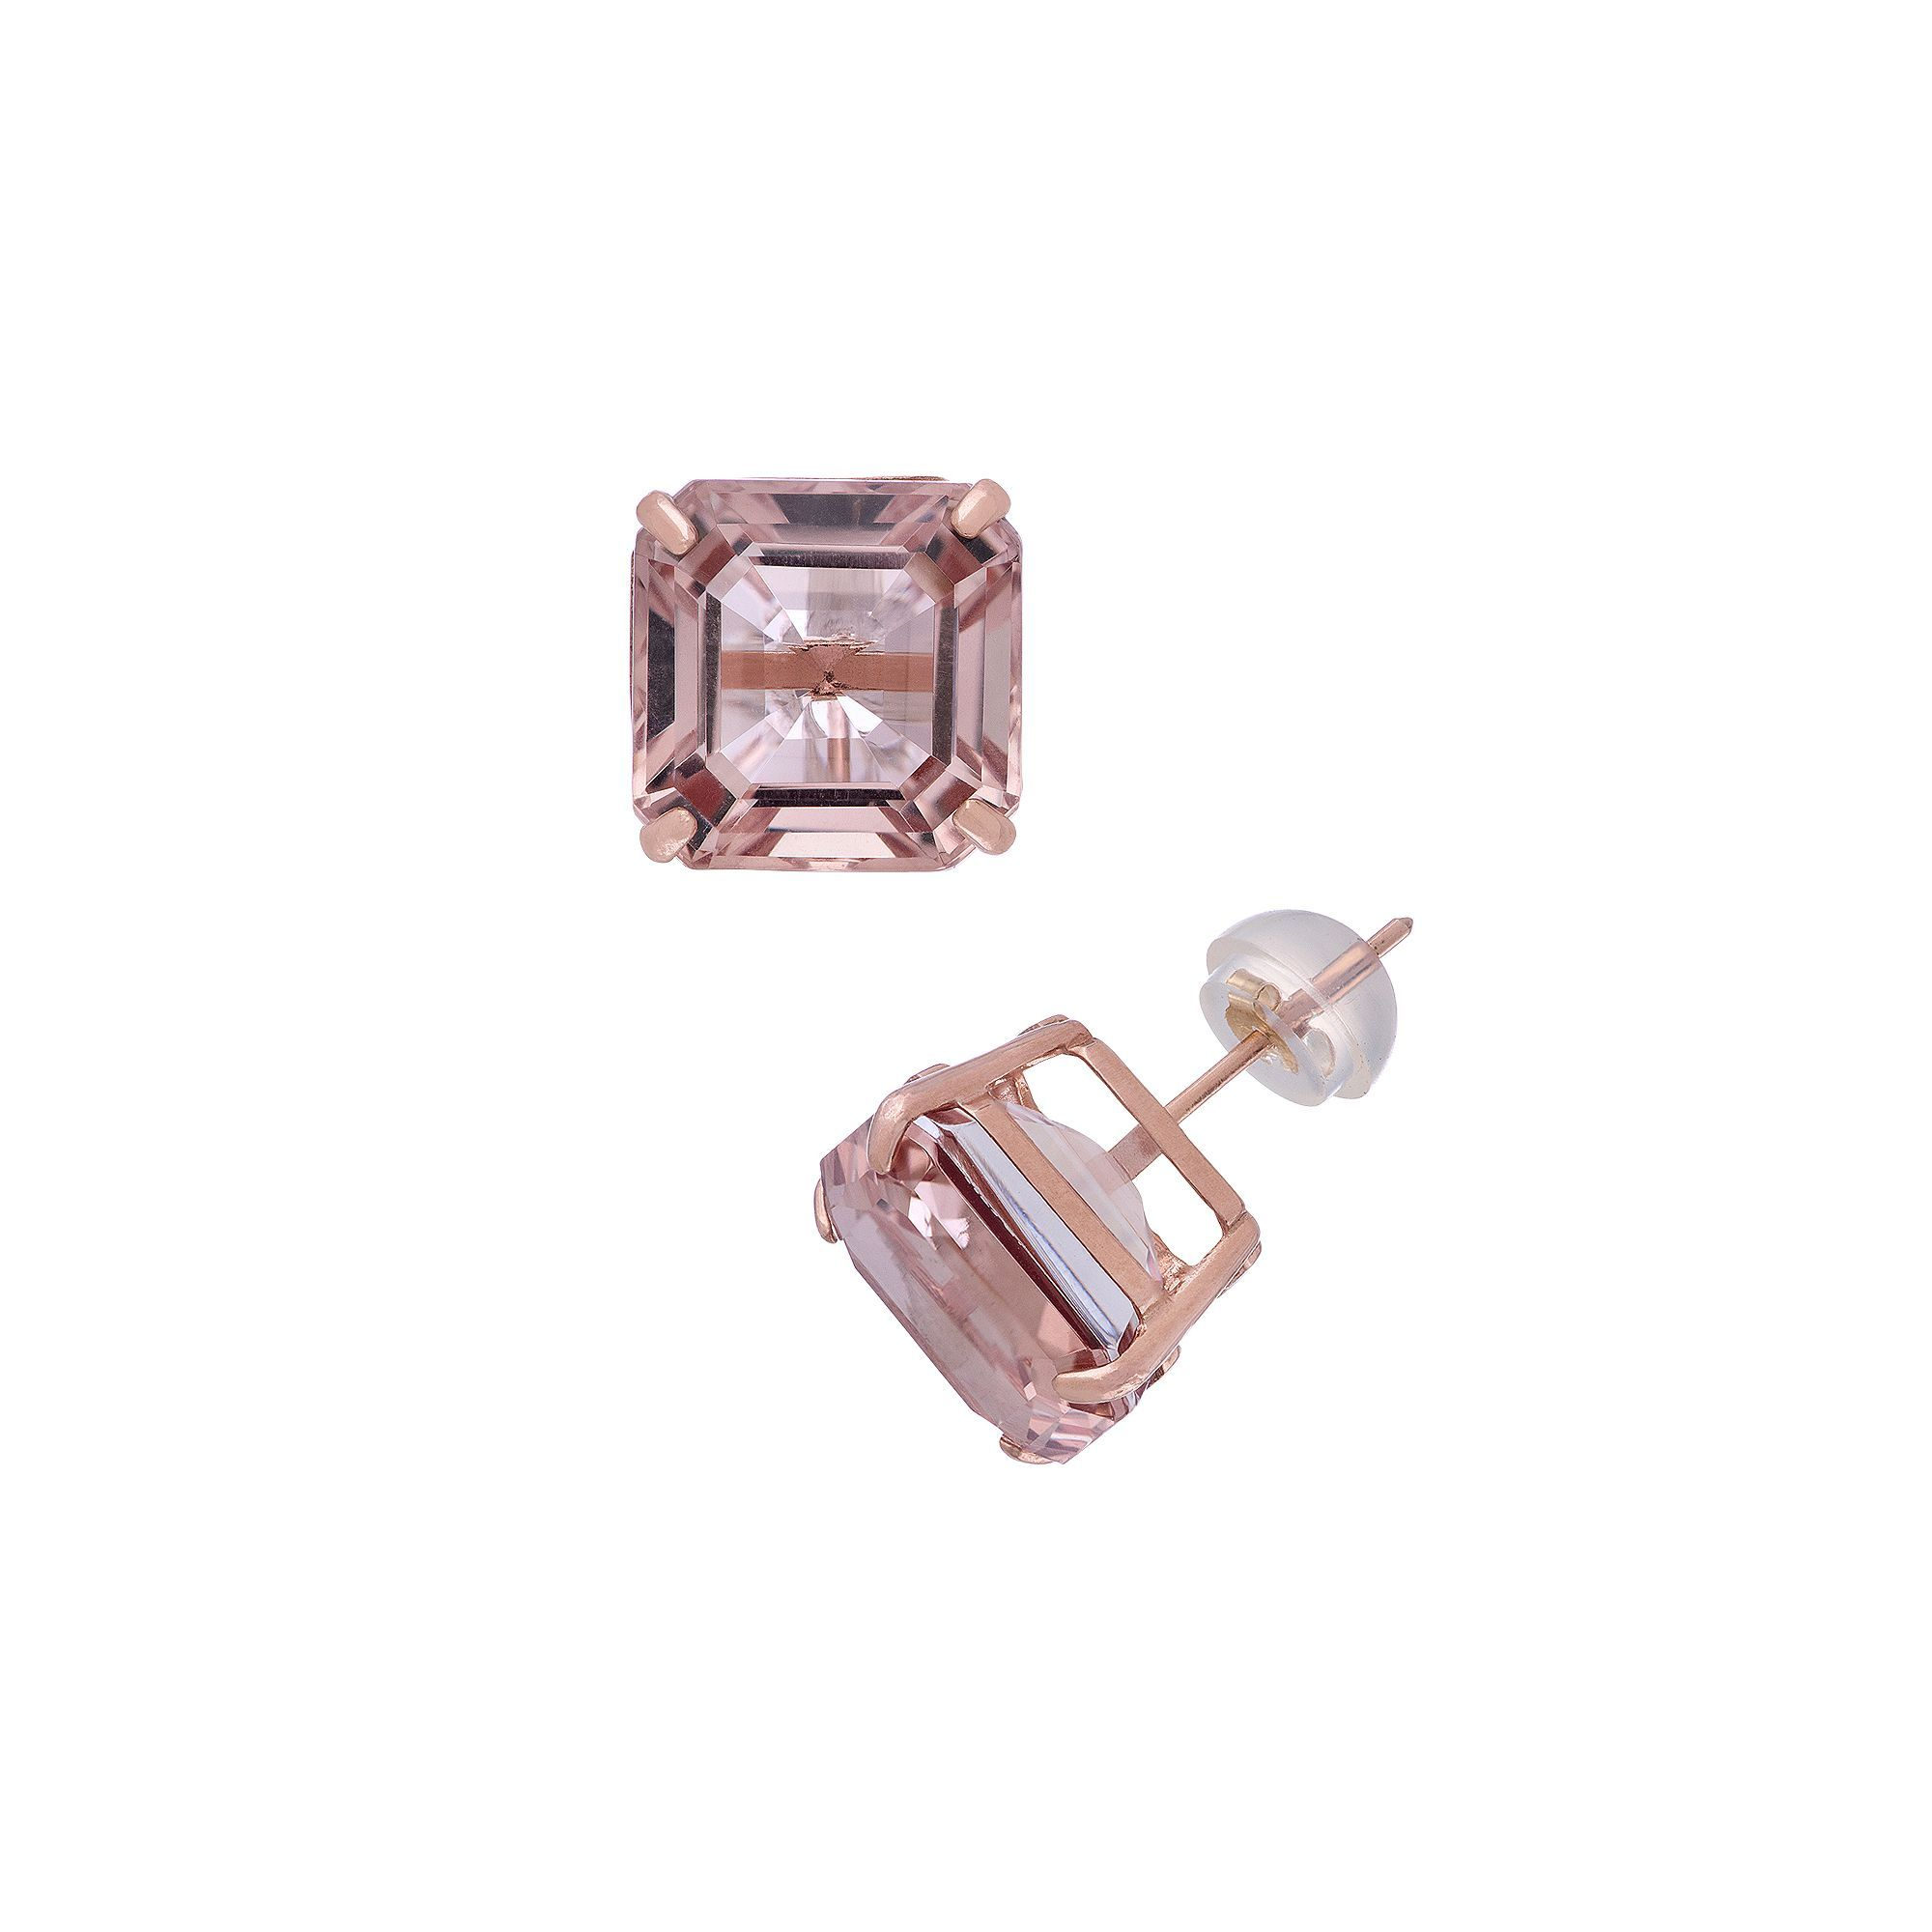 Simulated Aquamarine Cross Stud Earrings 14K Rose Gold Over Sterling Silver